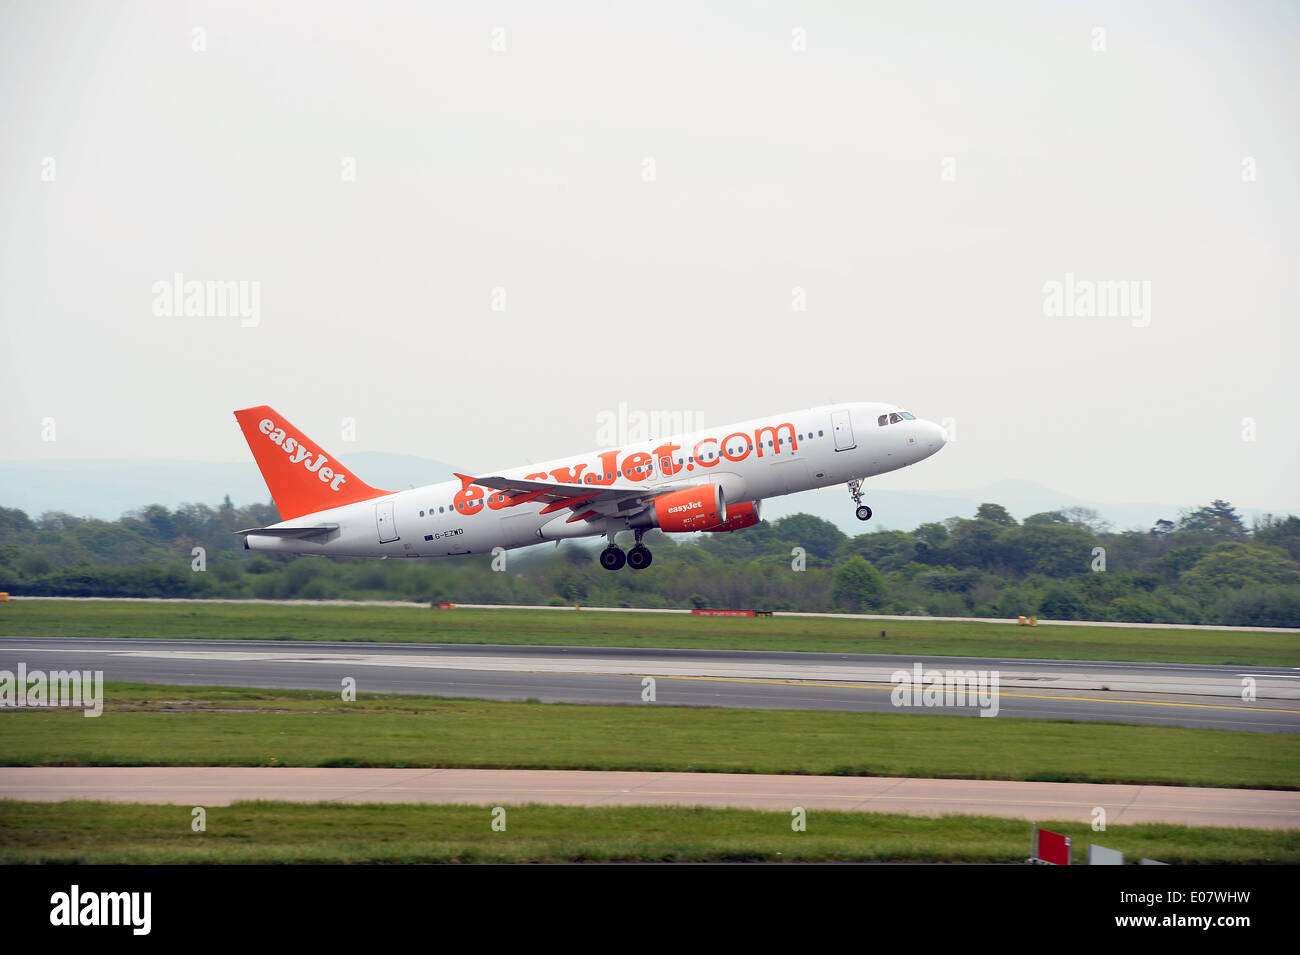 Easyjet plane taking off at Manchester Airport - Stock Image